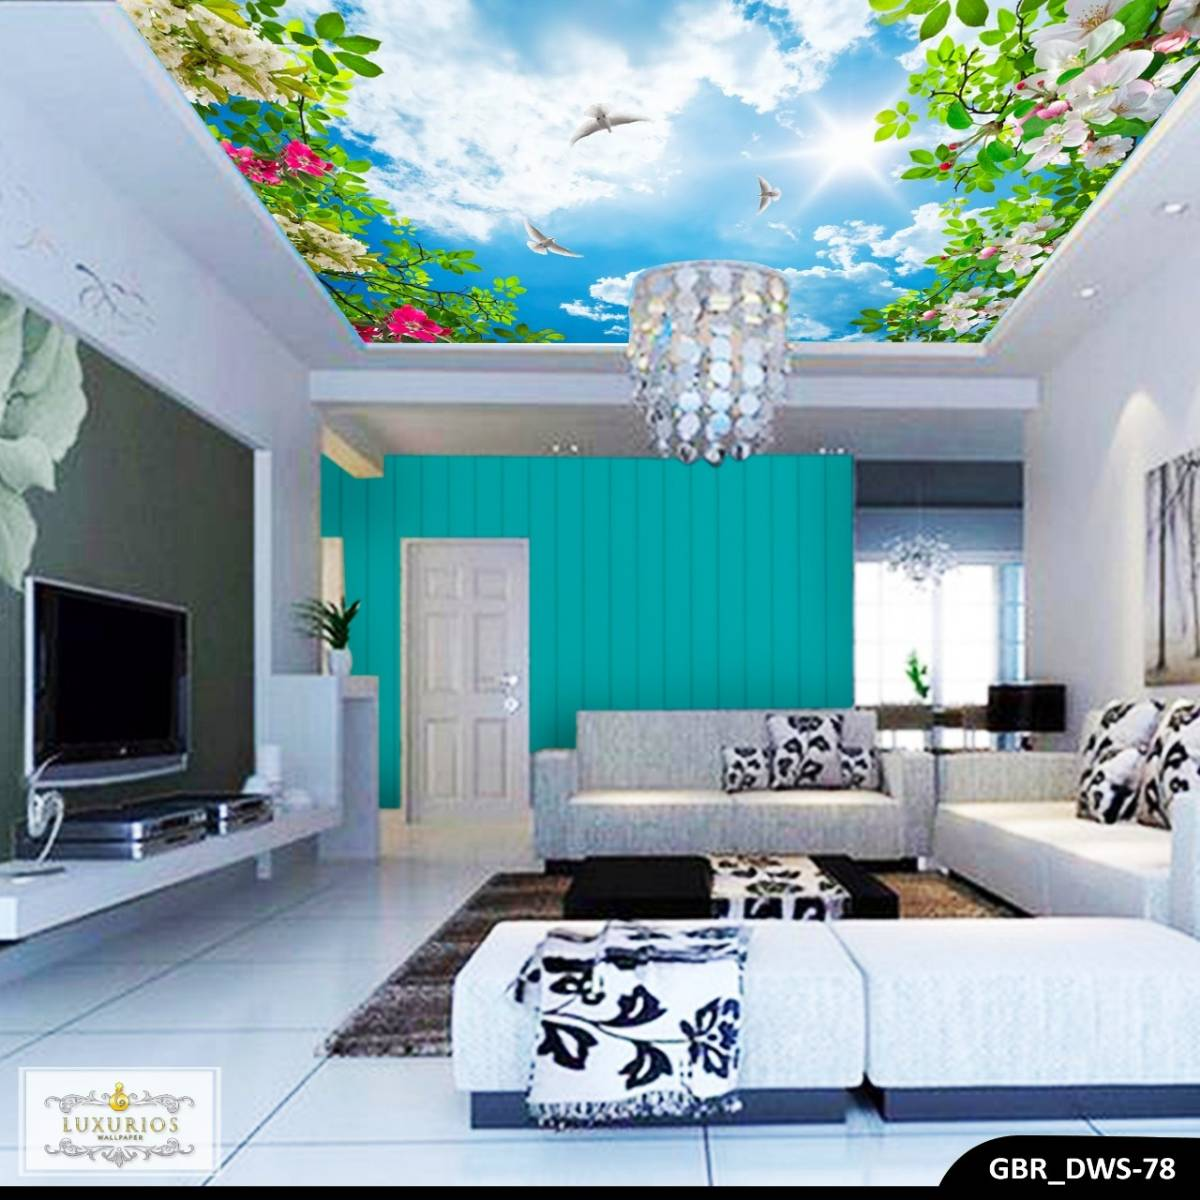 Wallpaper Custom Wallpaper 3d Wallpaper Plafon Langit Cerah 4